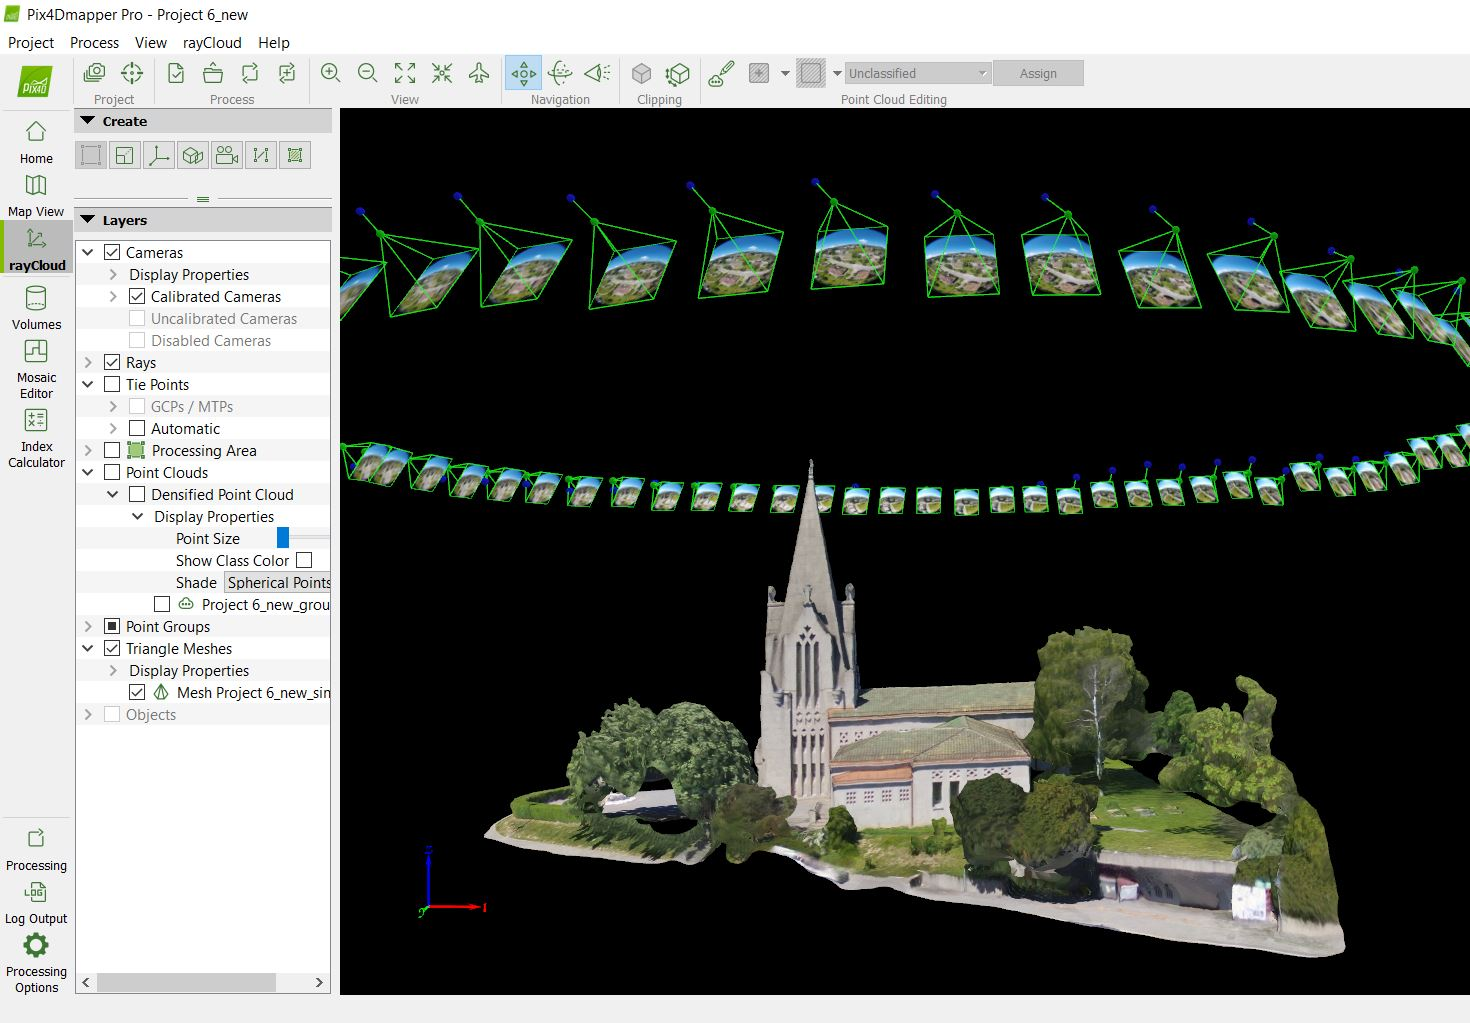 raycloud interface of a church